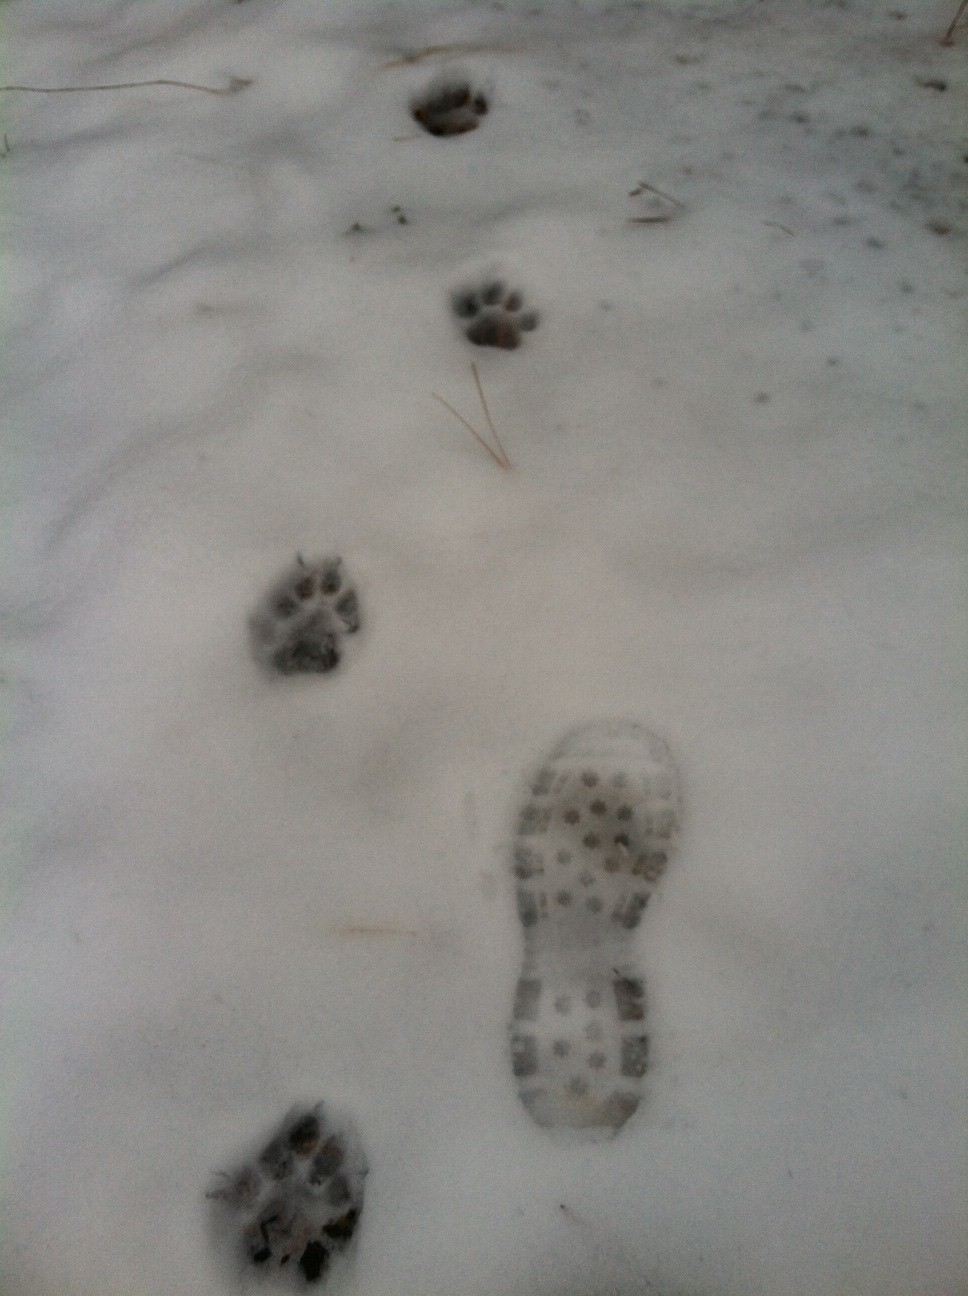 Cougar tracks. I wasn't far behind this cat in Eastern Washington.